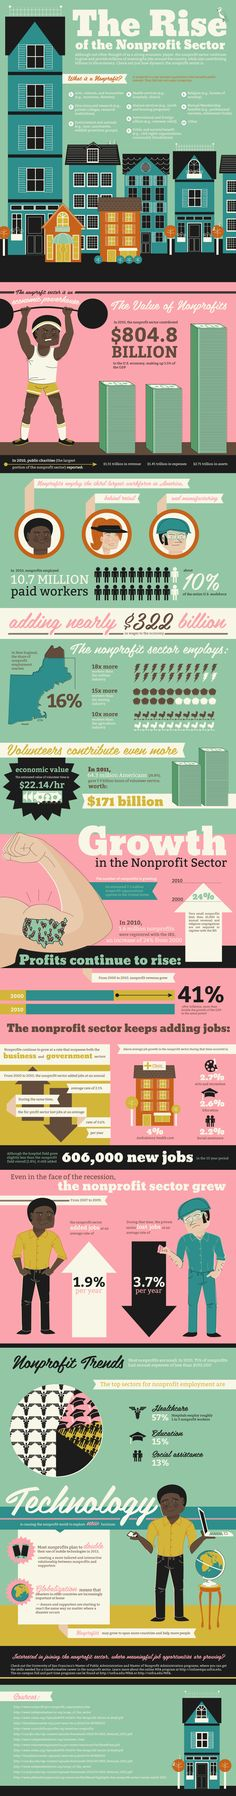 More and more people aspire to meaningful jobs in the growing Nonprofit Sector. Nonprofits are tax-exempt organizations that benefit the public and in